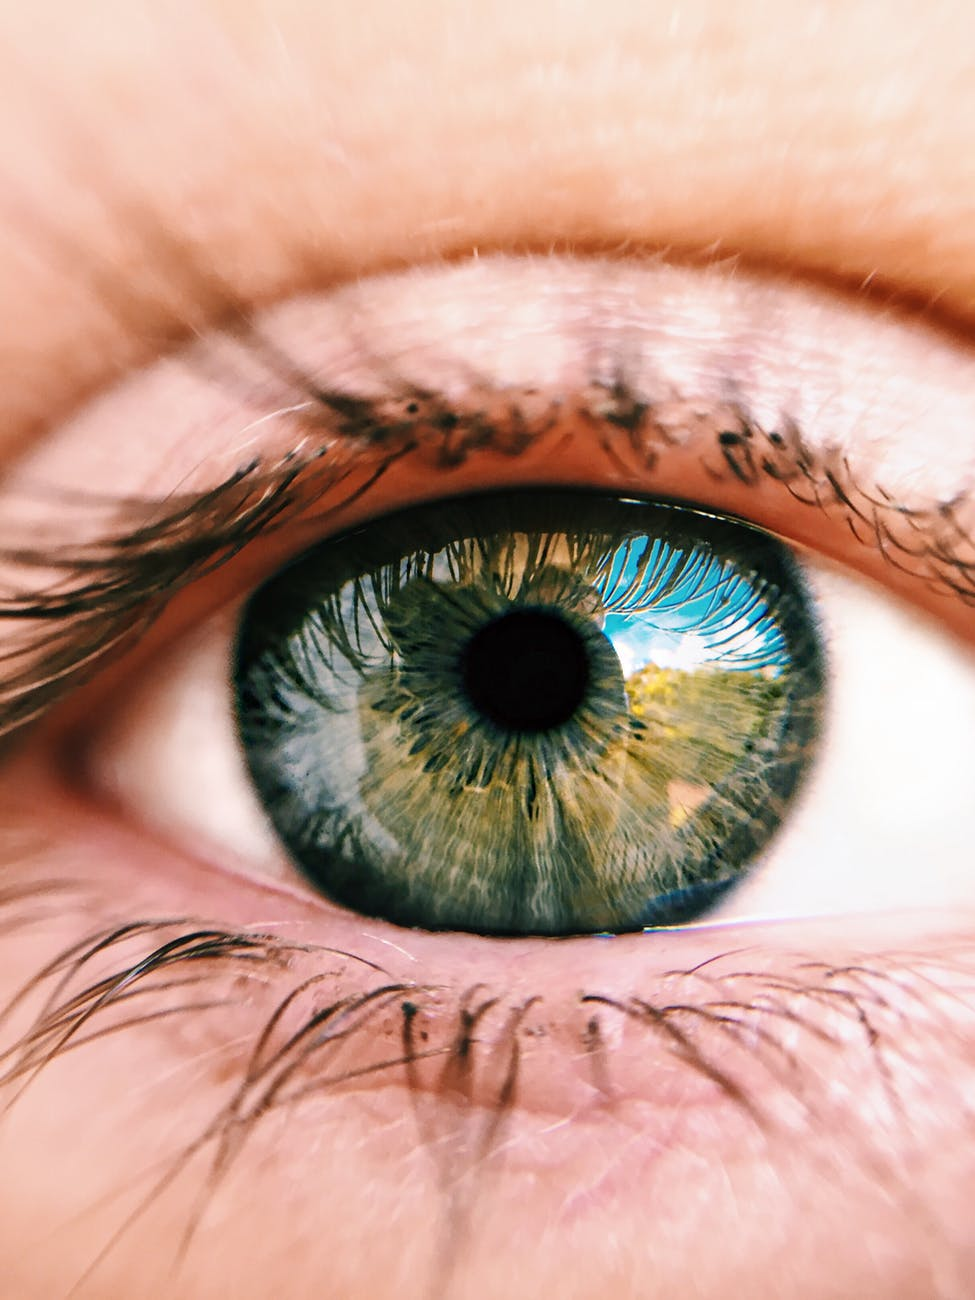 Artificial Eye Market 2019: Overview, Size, Growth, Top Key Players, Analysis, Growth and Trends by Forecast to 2023